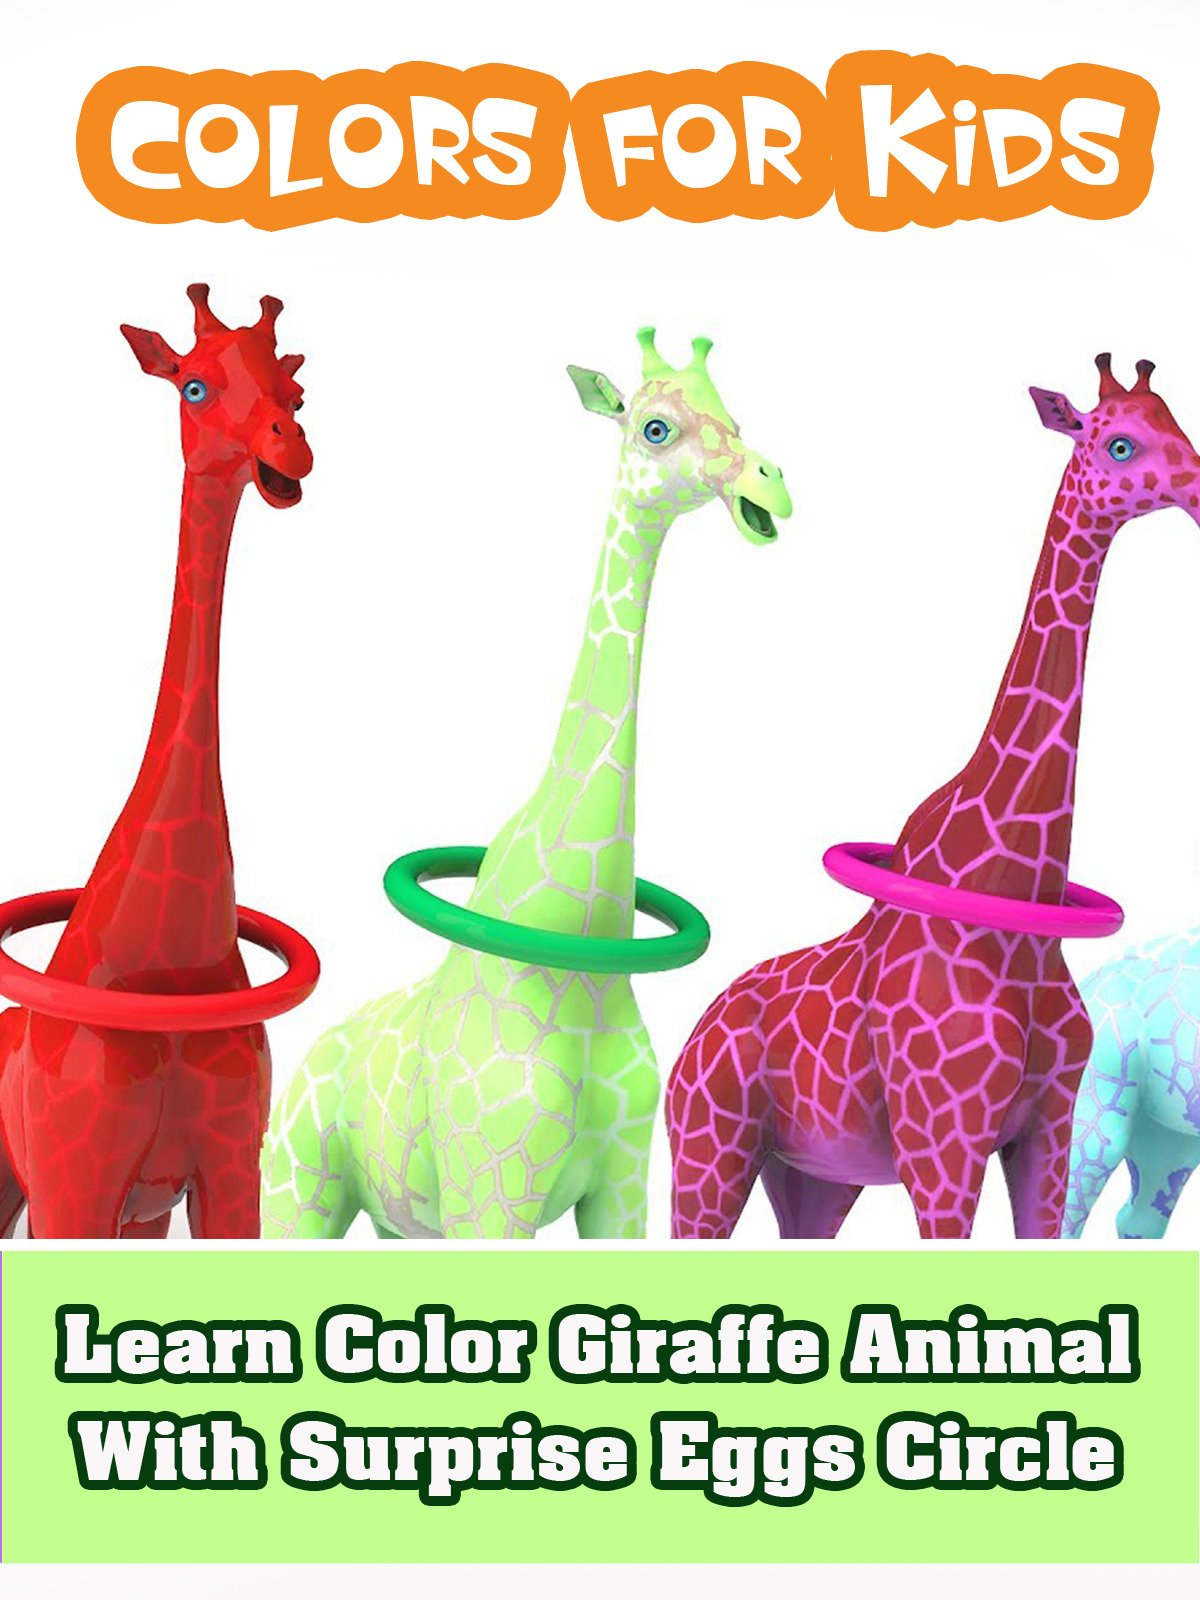 Learn Color Giraffe Animal With Surprise Eggs Circle